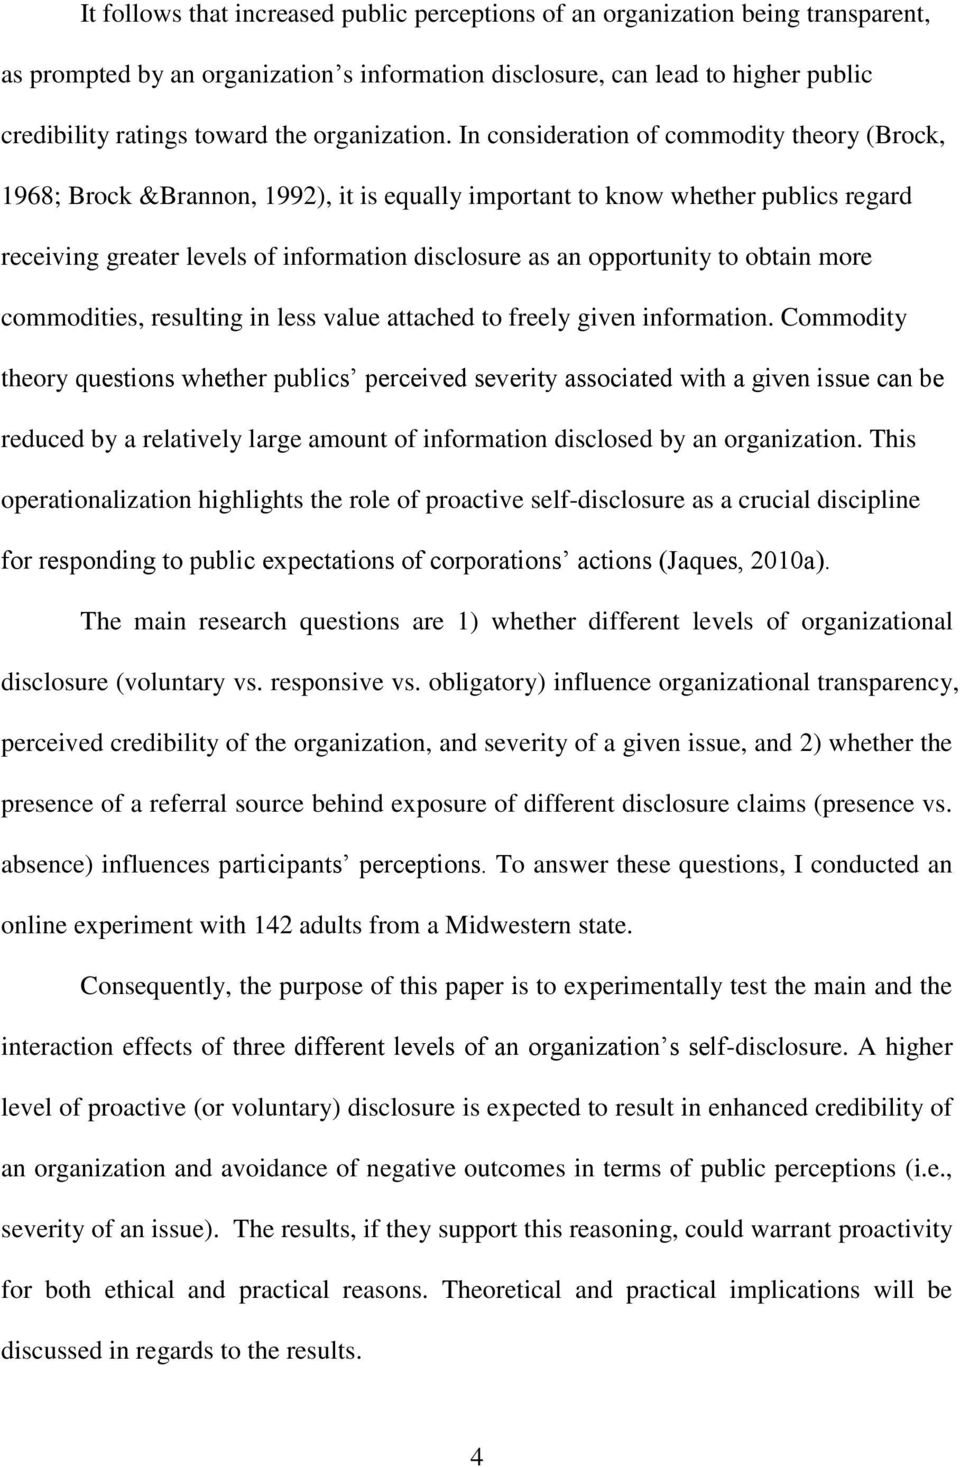 In consideration of commodity theory (Brock, 1968; Brock &Brannon, 1992), it is equally important to know whether publics regard receiving greater levels of information disclosure as an opportunity